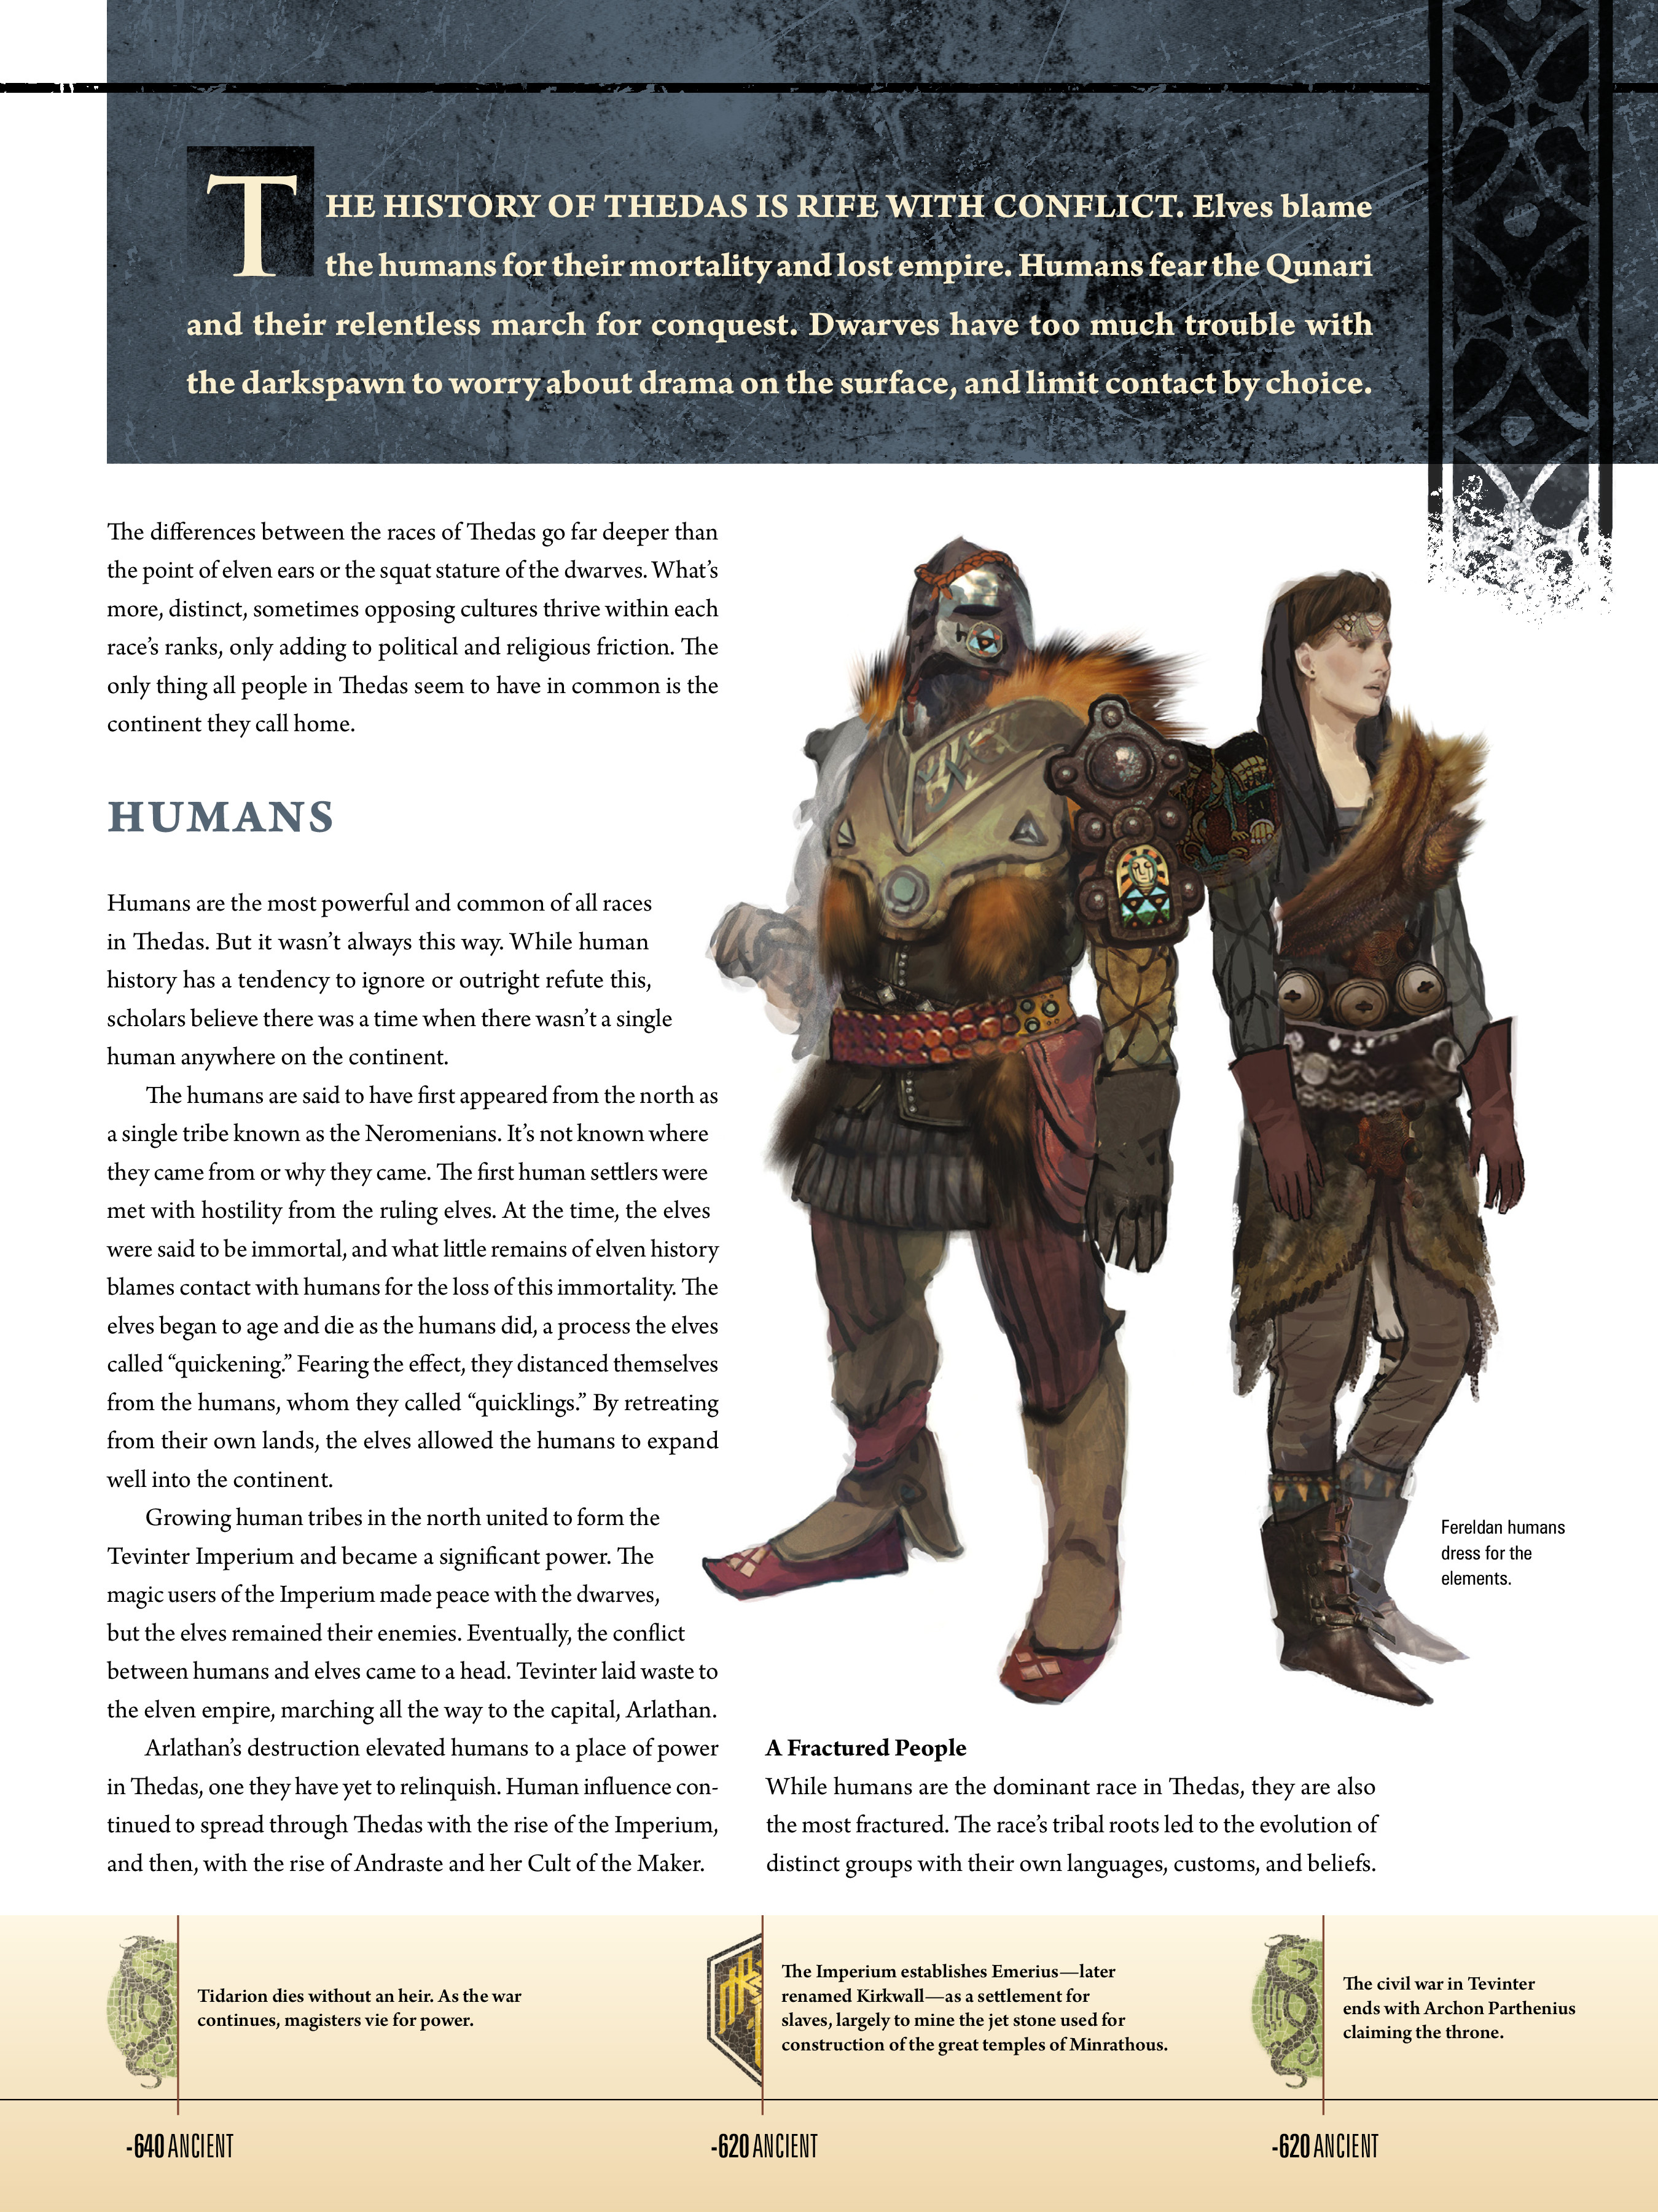 Read online Dragon Age: The World of Thedas comic -  Issue # TPB 1 - 20